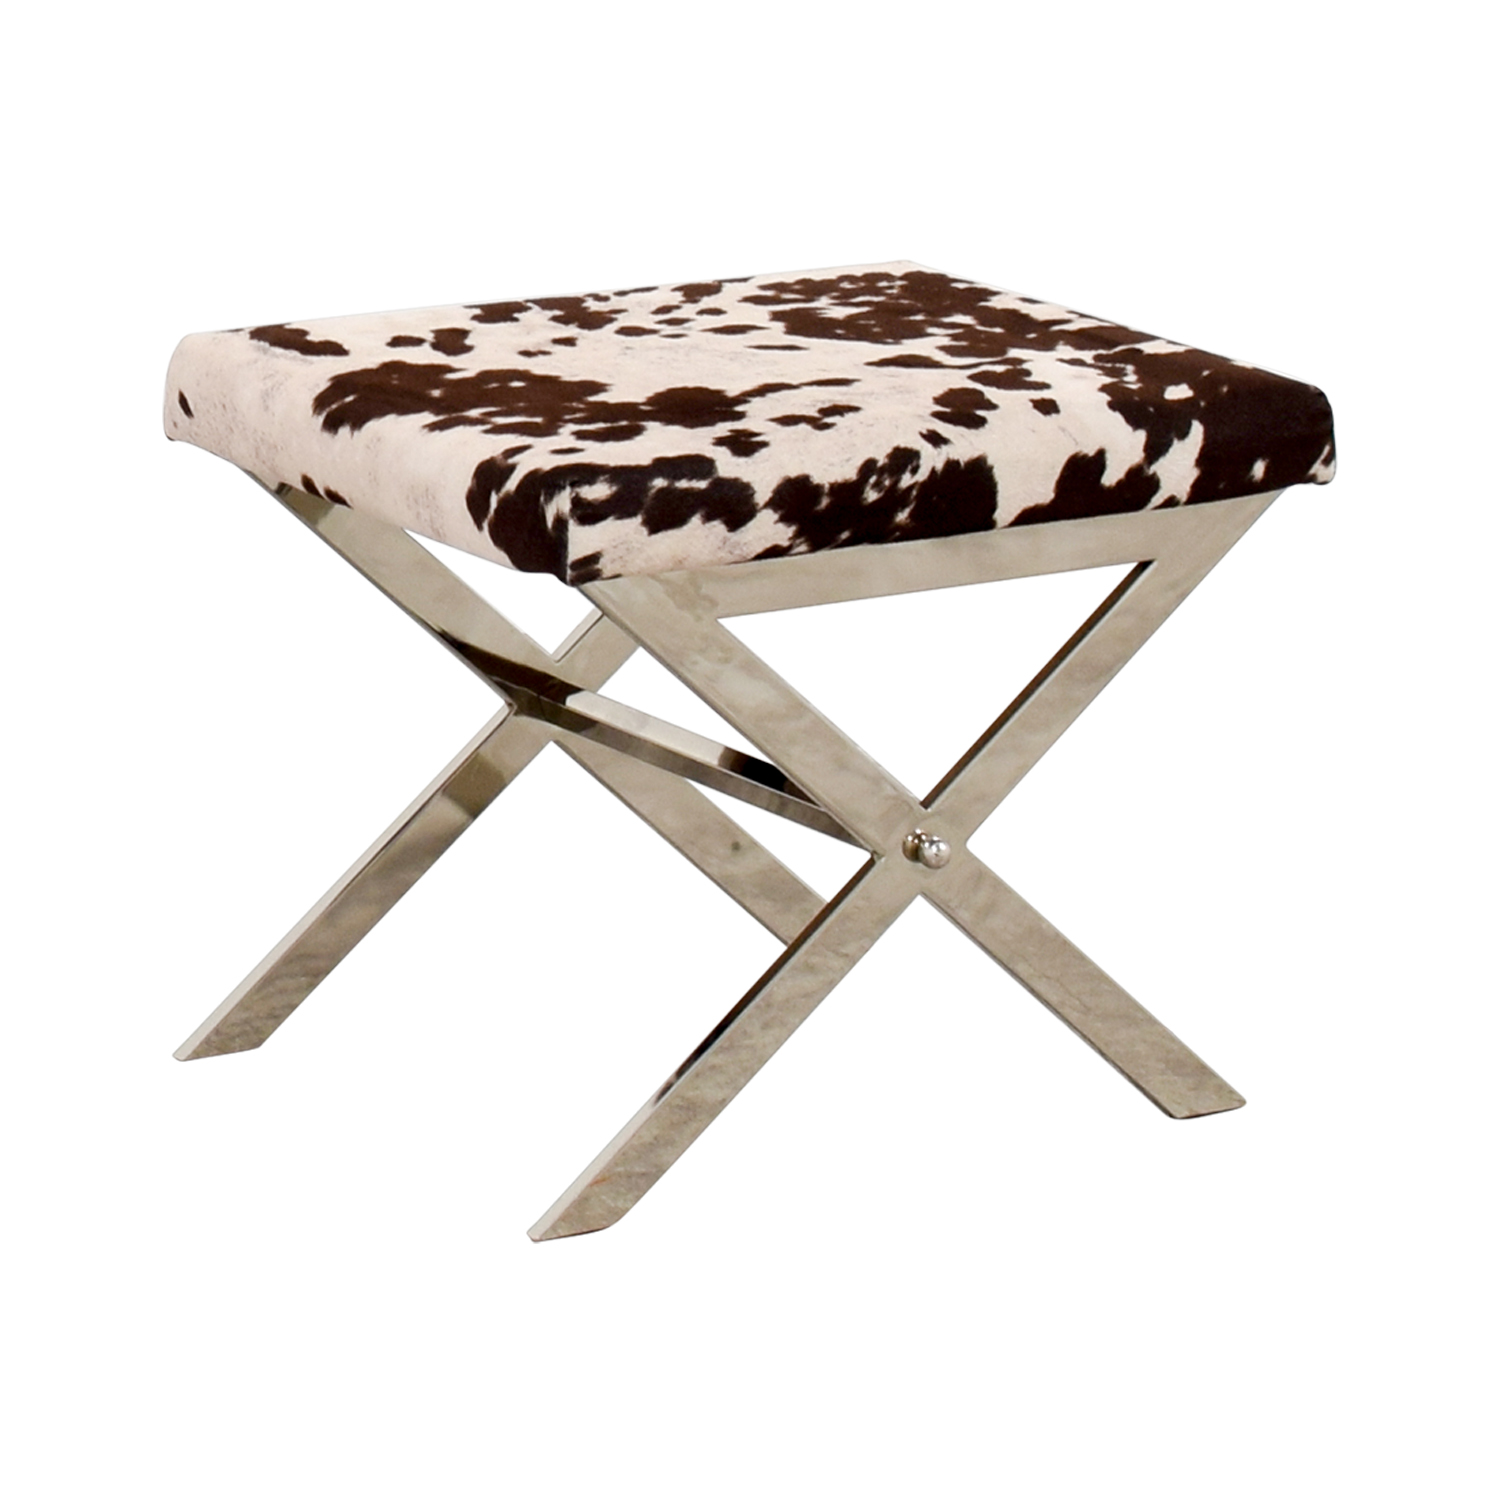 Awe Inspiring 68 Off Black And White Cow Print Stool Chairs Dailytribune Chair Design For Home Dailytribuneorg